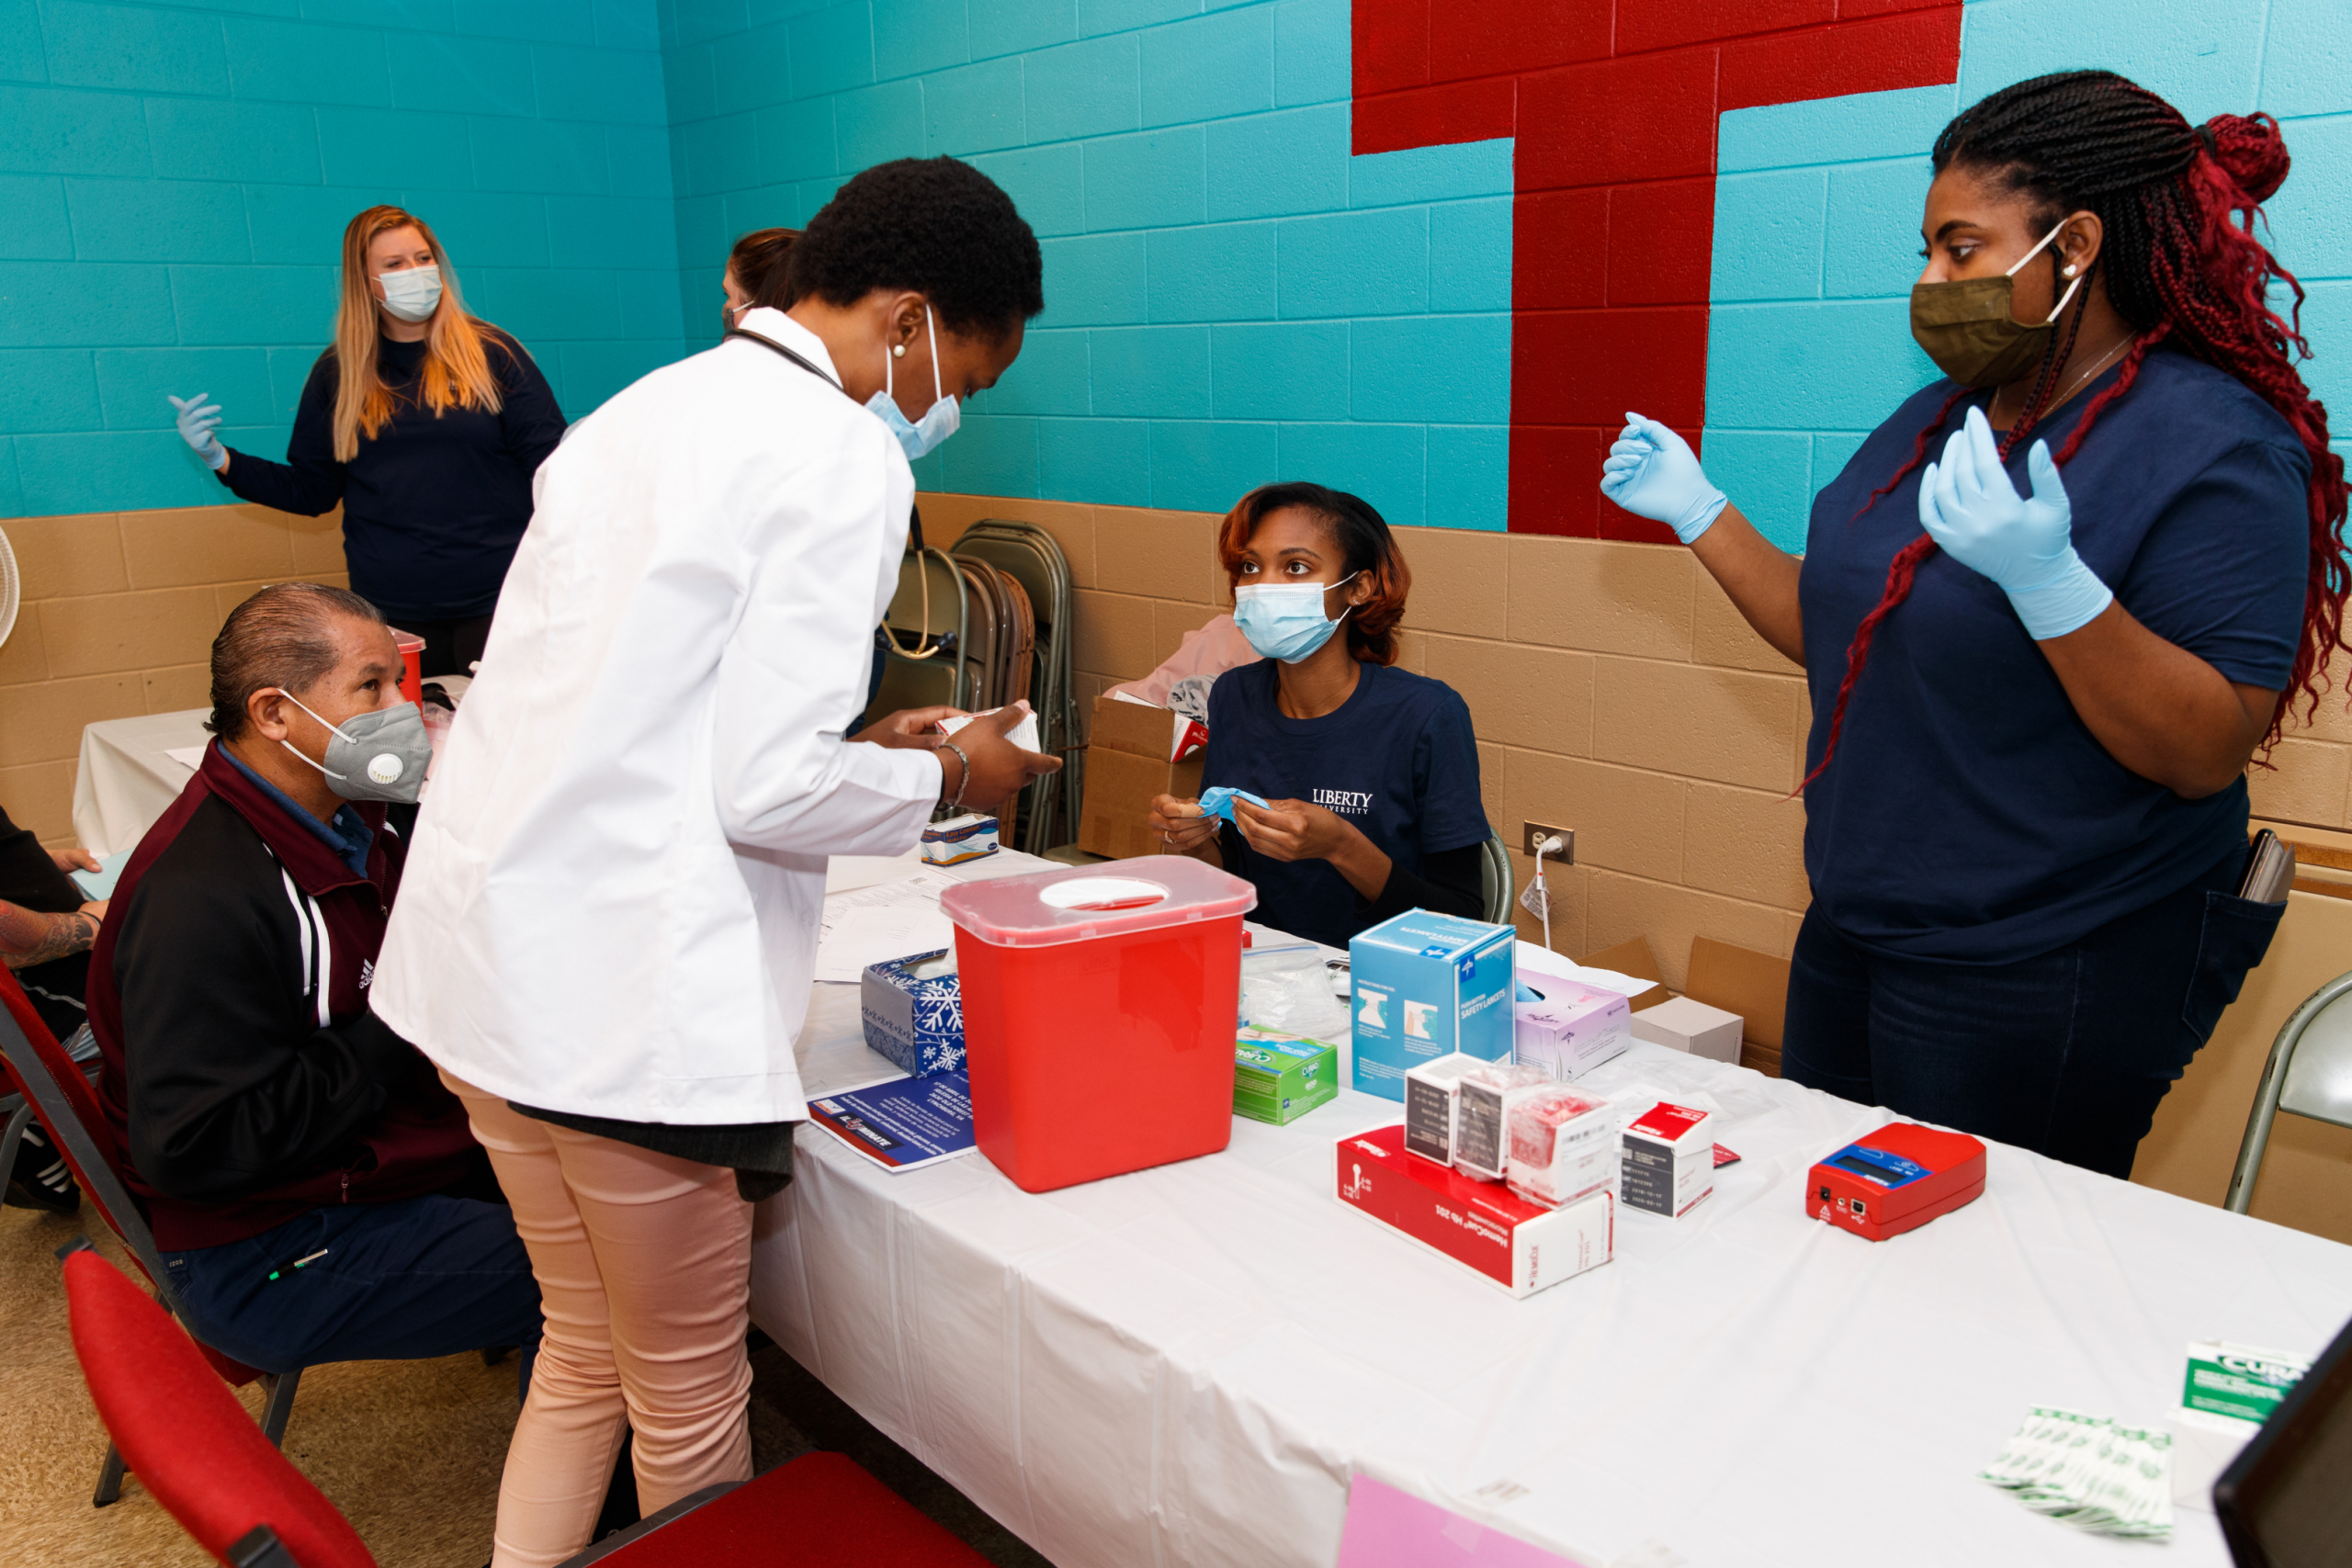 Public health students hold health fair, vaccination clinic for local underserved Hispanic community